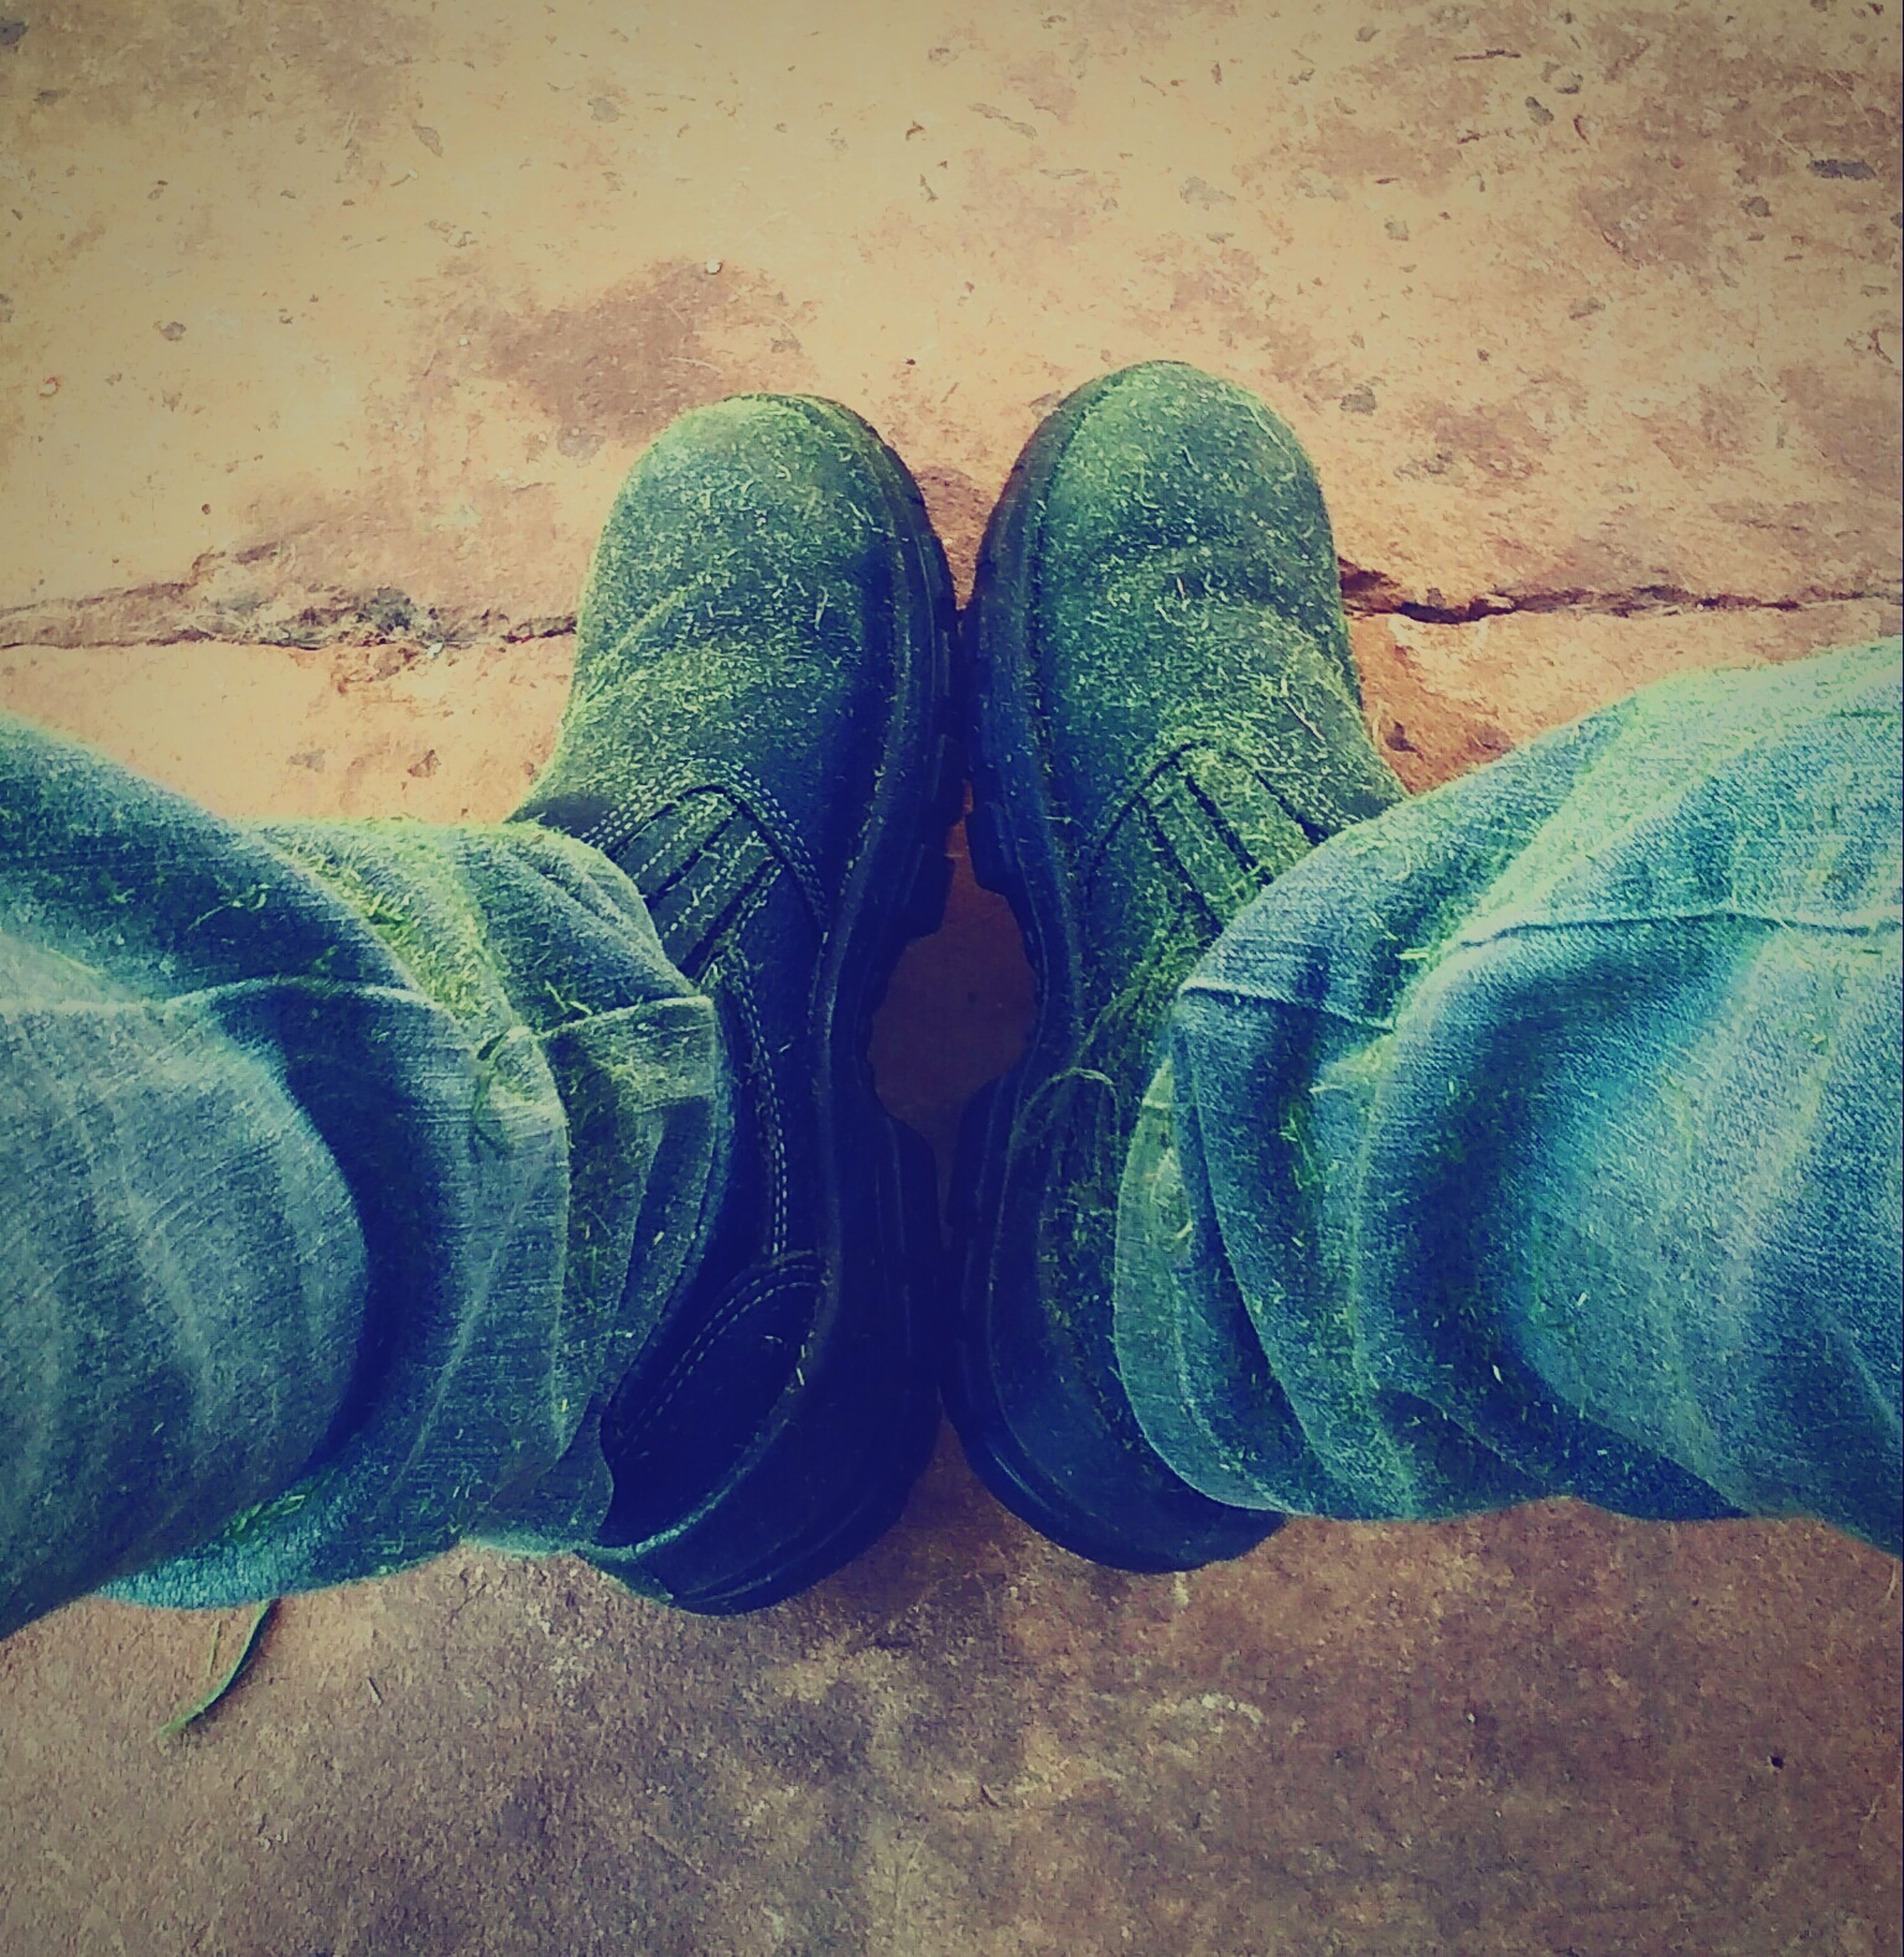 shoe, low section, person, high angle view, personal perspective, footwear, jeans, close-up, pair, standing, sand, part of, outdoors, unrecognizable person, human foot, day, men